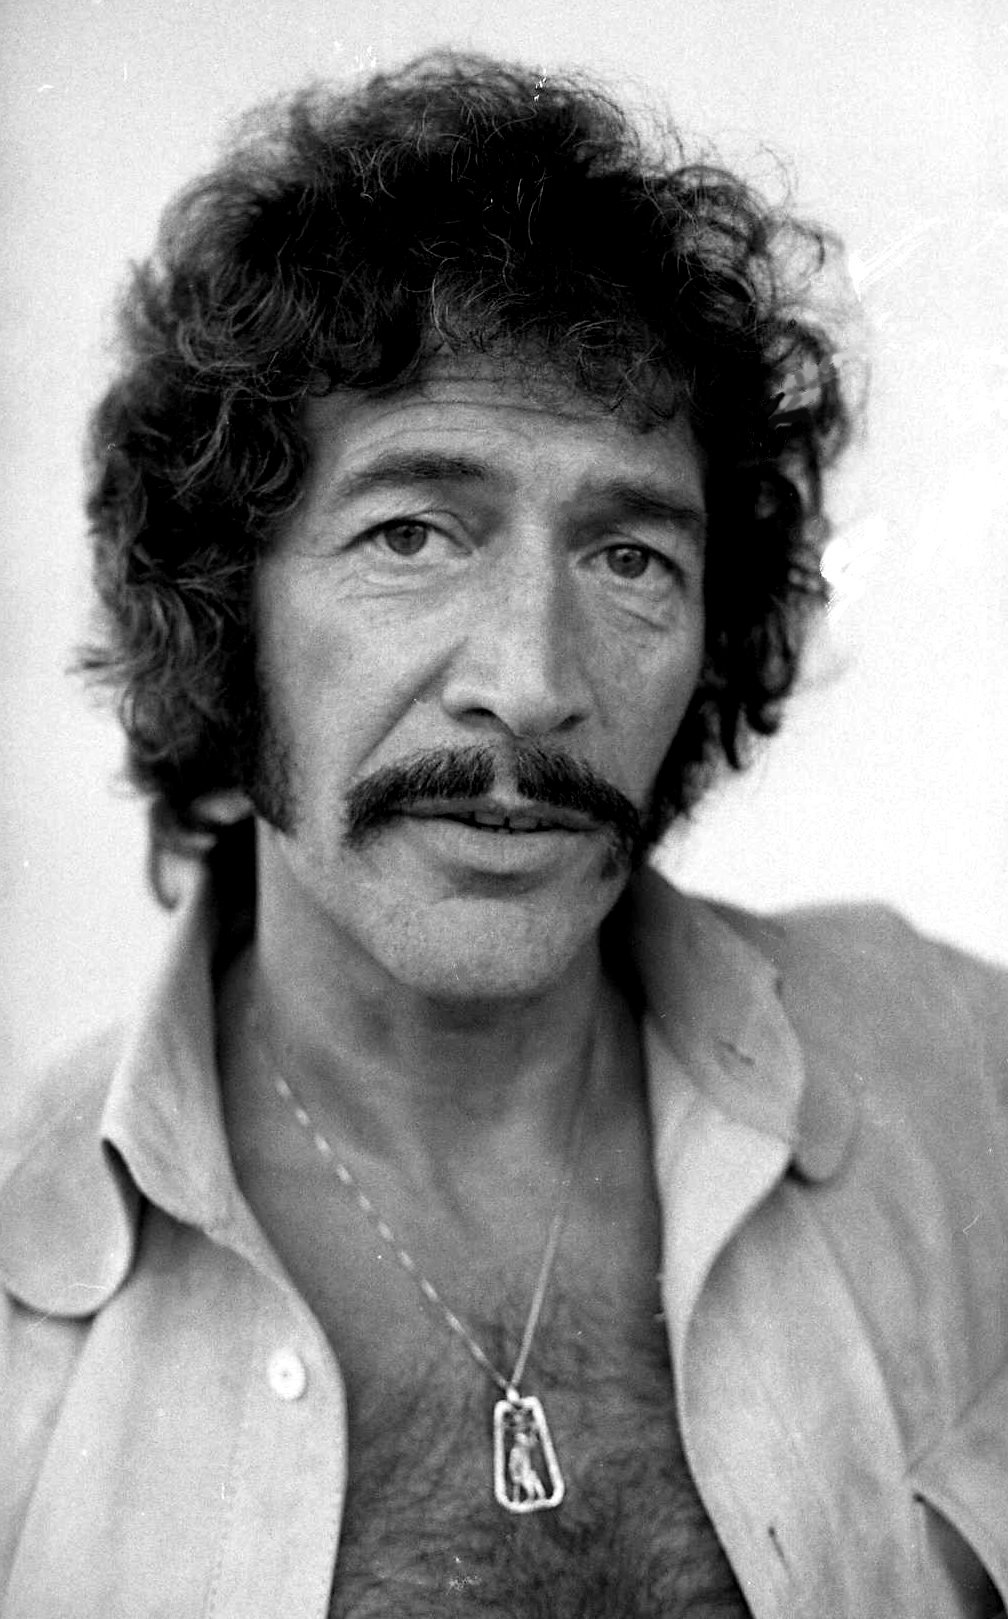 Peter Wyngarde (1927-2018 (born in Marseille, France)